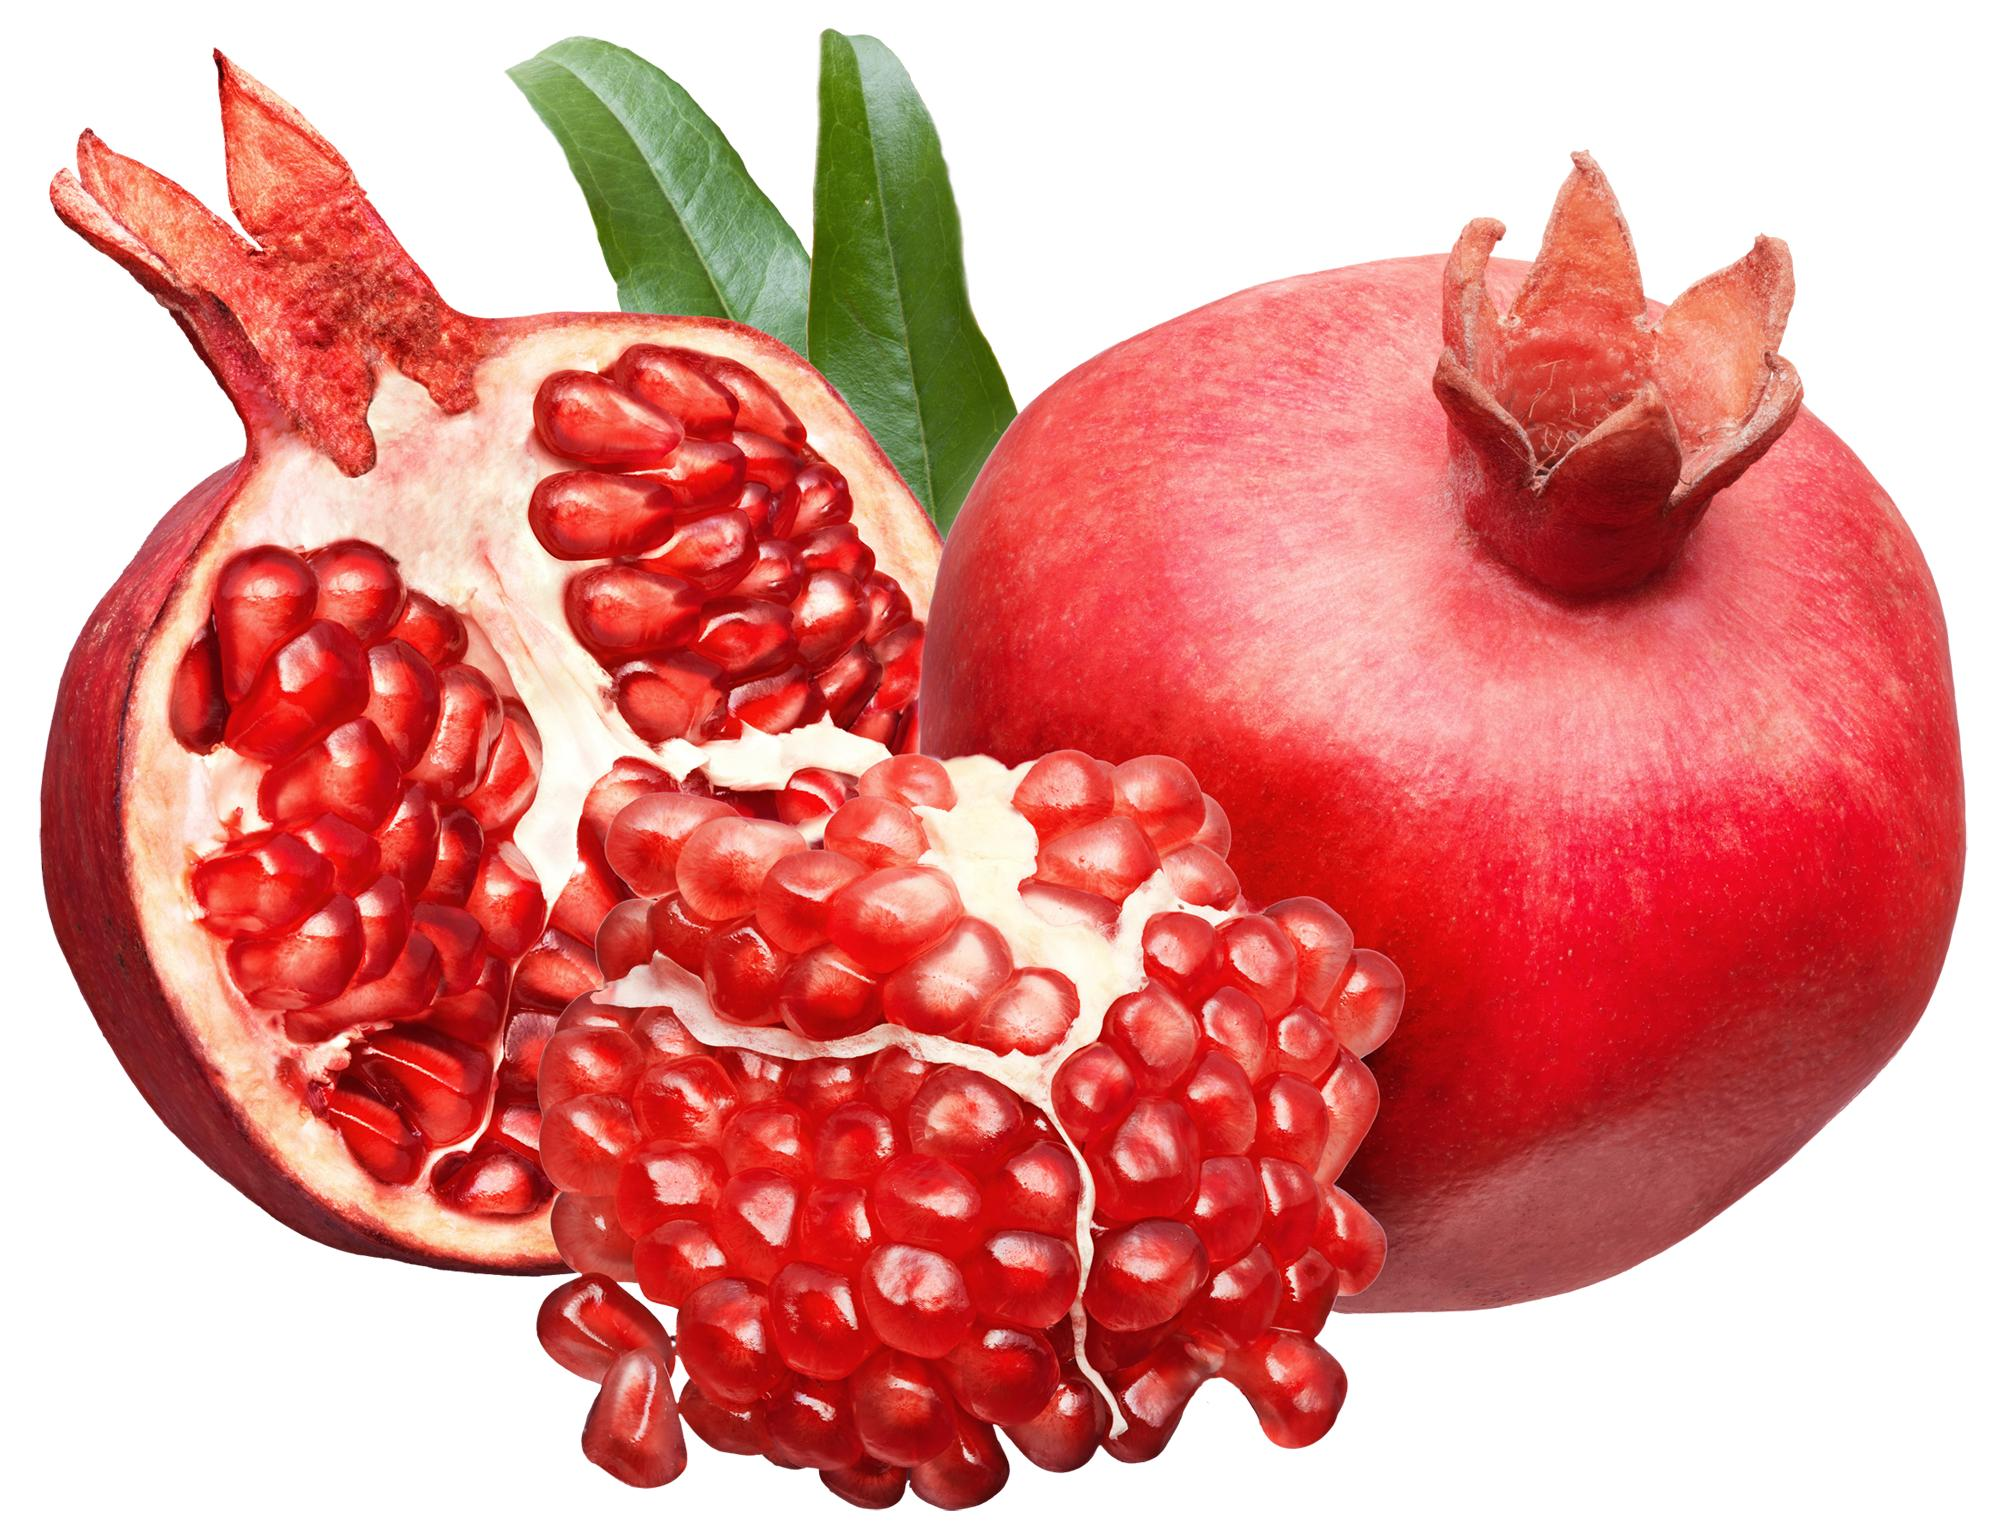 banner royalty free download Pomegranate clipart pomegranate fruit. Free cliparts download clip